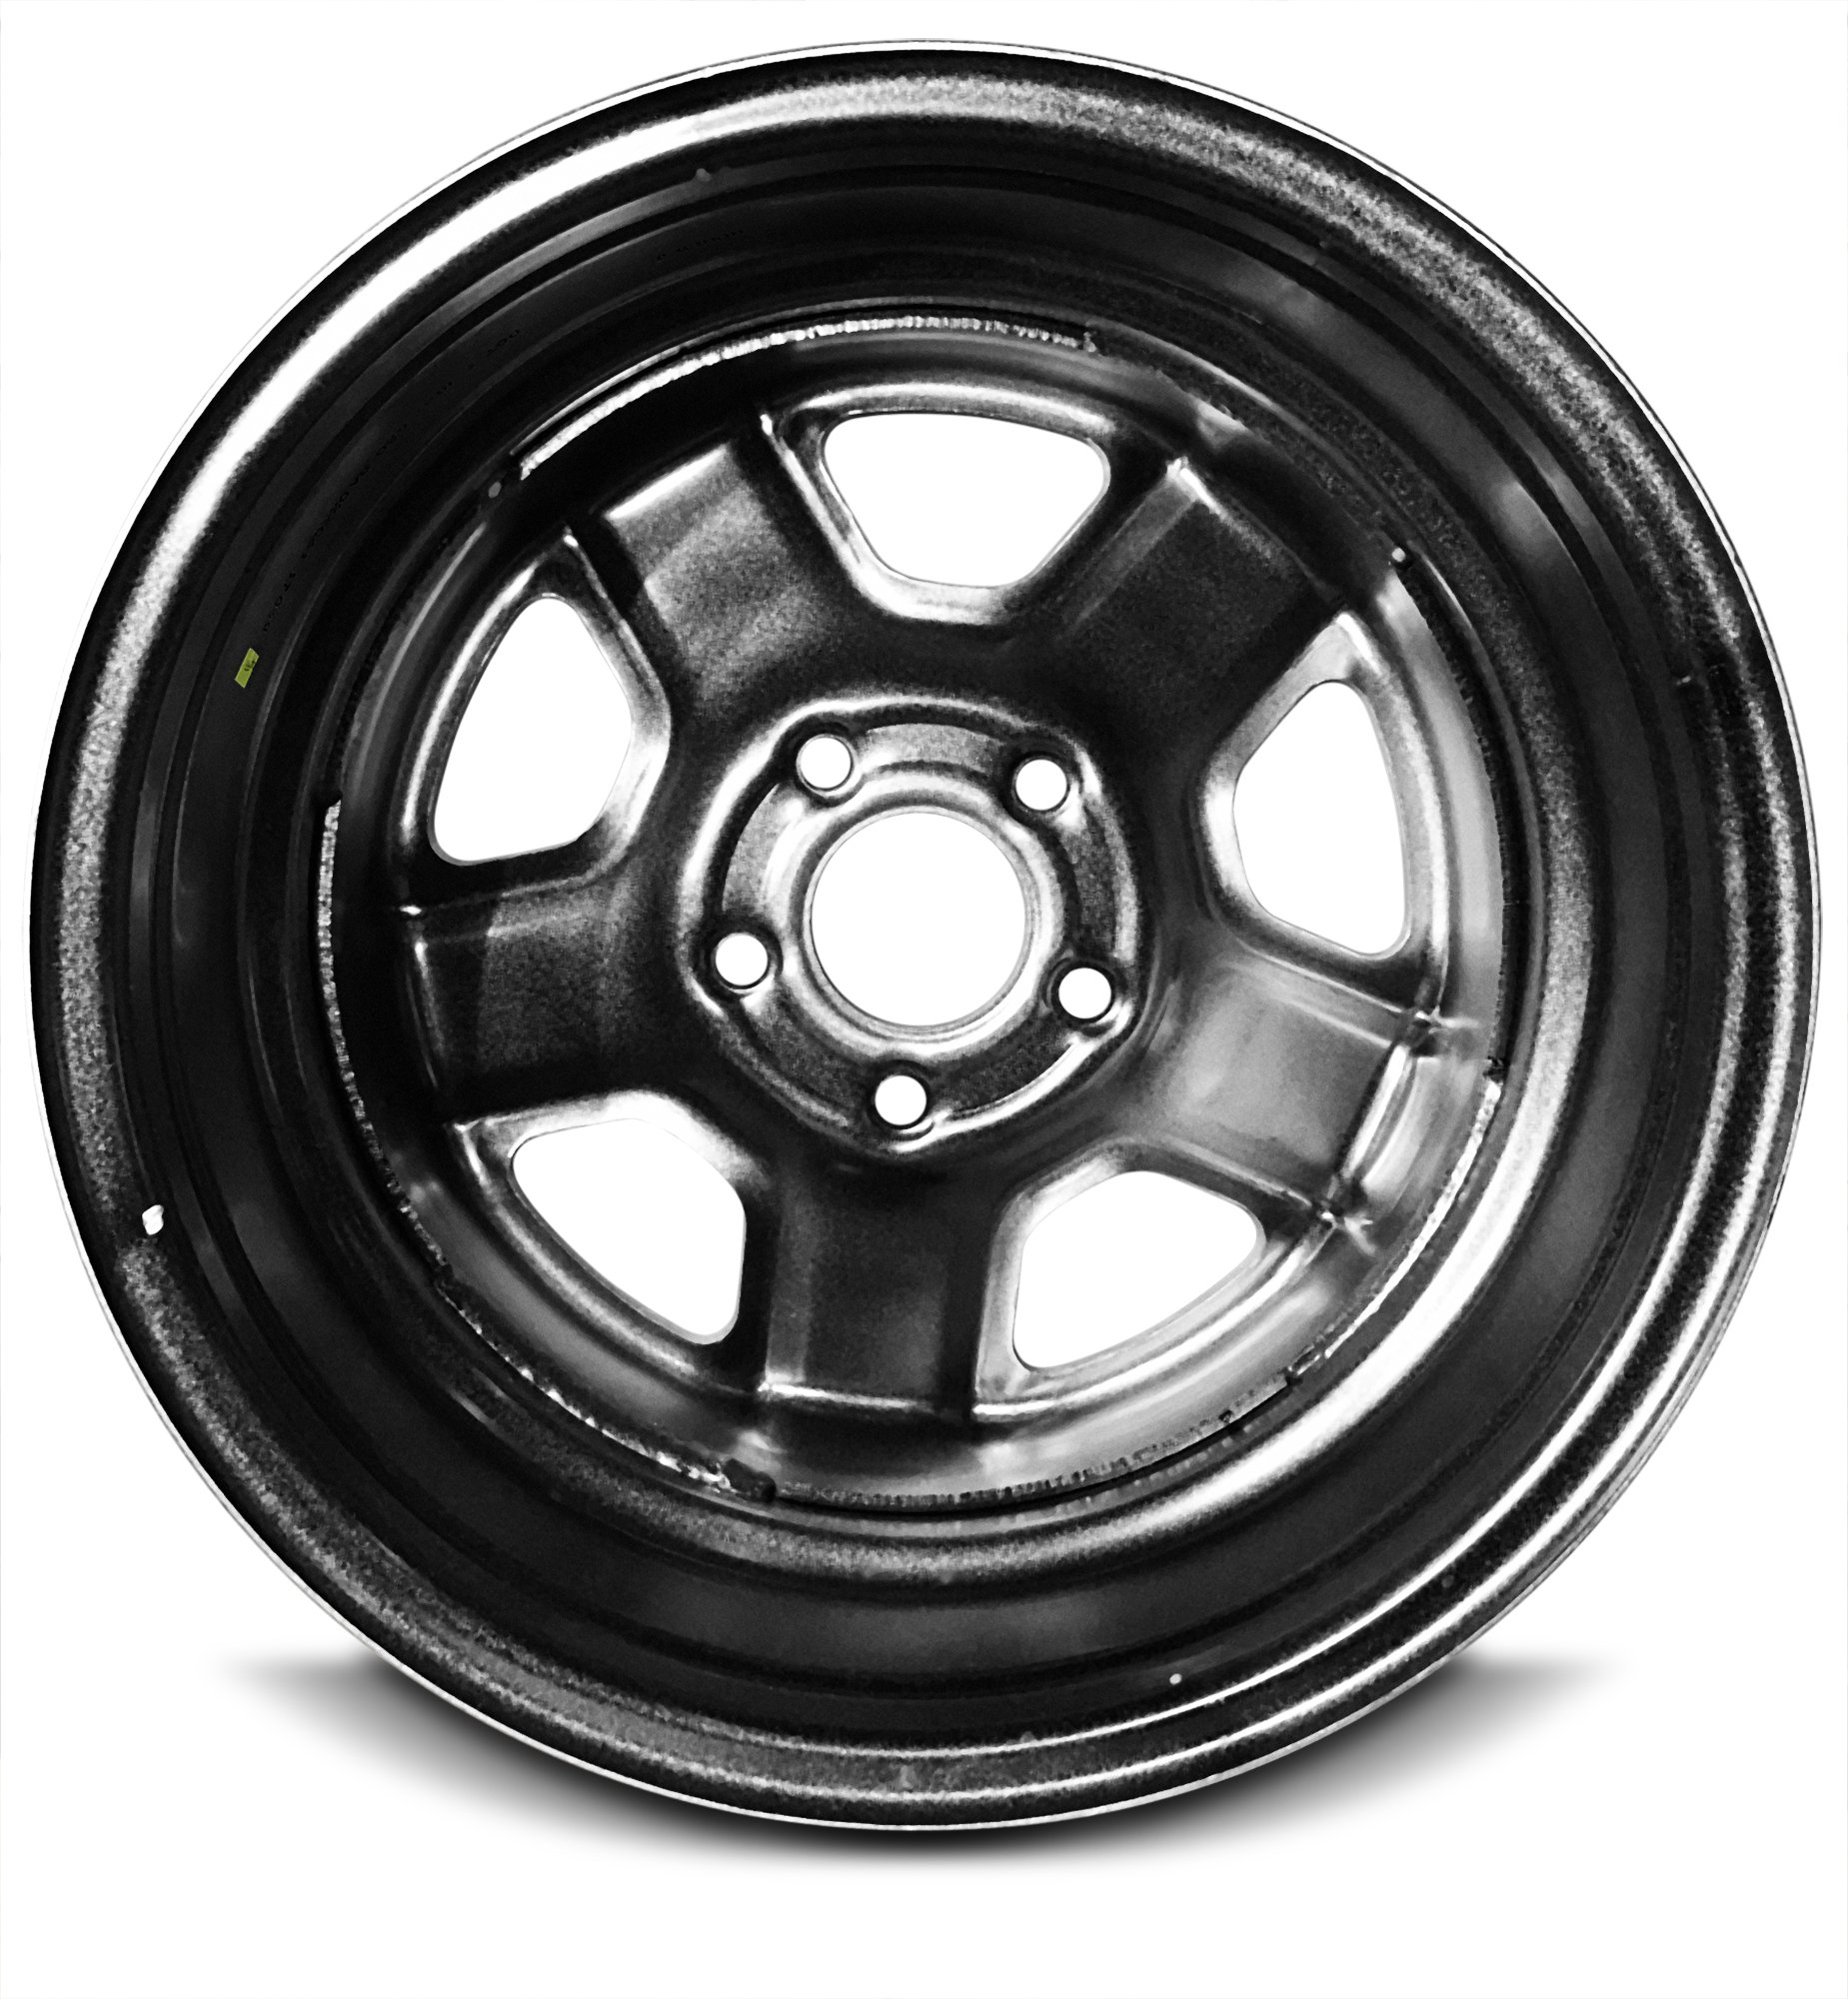 New 16 Inch Jeep Patriot Compass 5 Lug Silver Replacement Steel Wheel Rim 16x6.5 Inch 5 Lug 67.1mm Center Bore 40mm Offset WAA by Road Ready Wheels (Image #3)